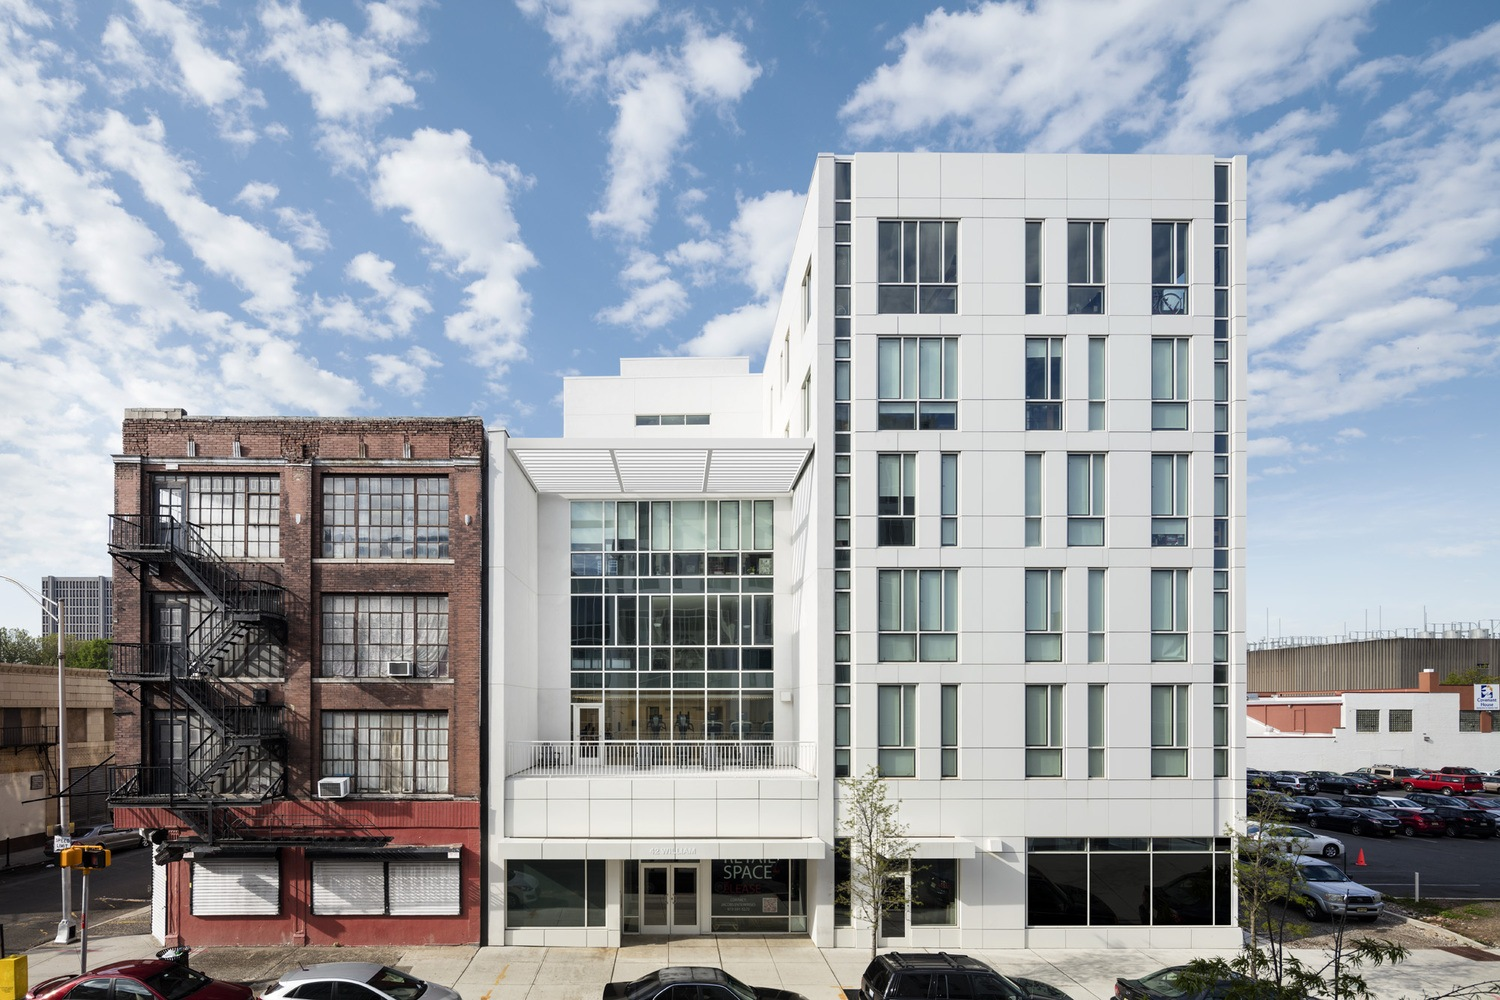 Richard Meier S Mixed Use Teachers Village Development Is Revitalizing Downtown Newark 6sqft